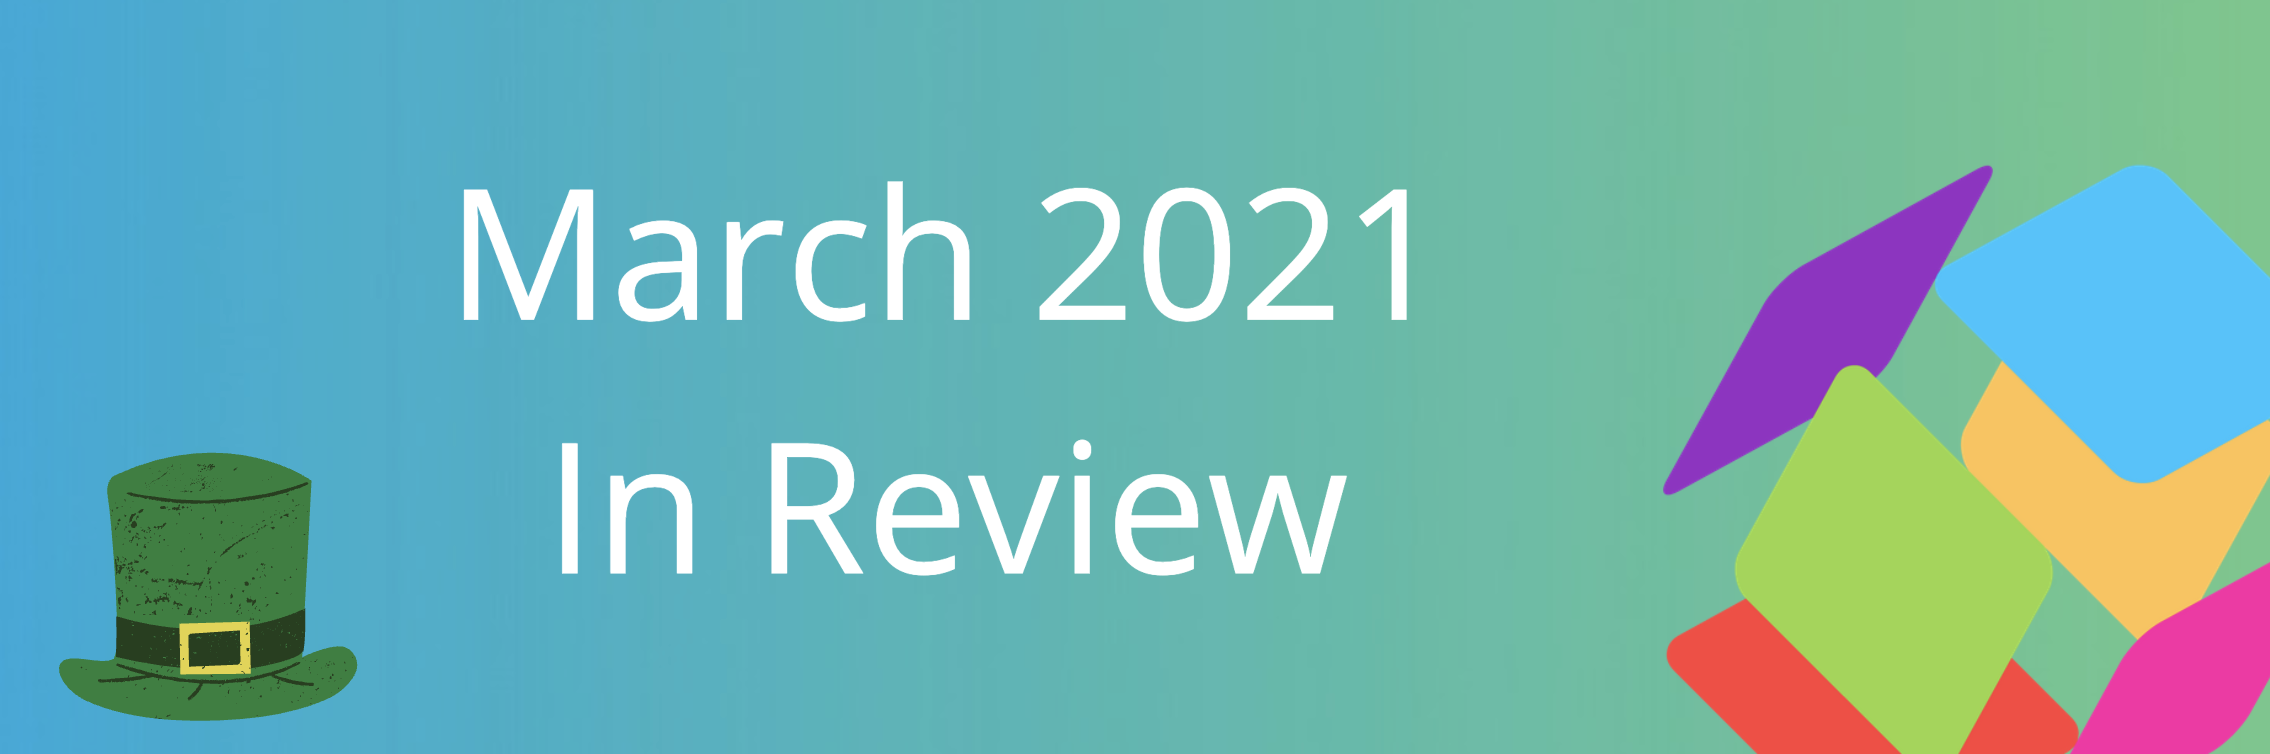 march 2021 in review feature image